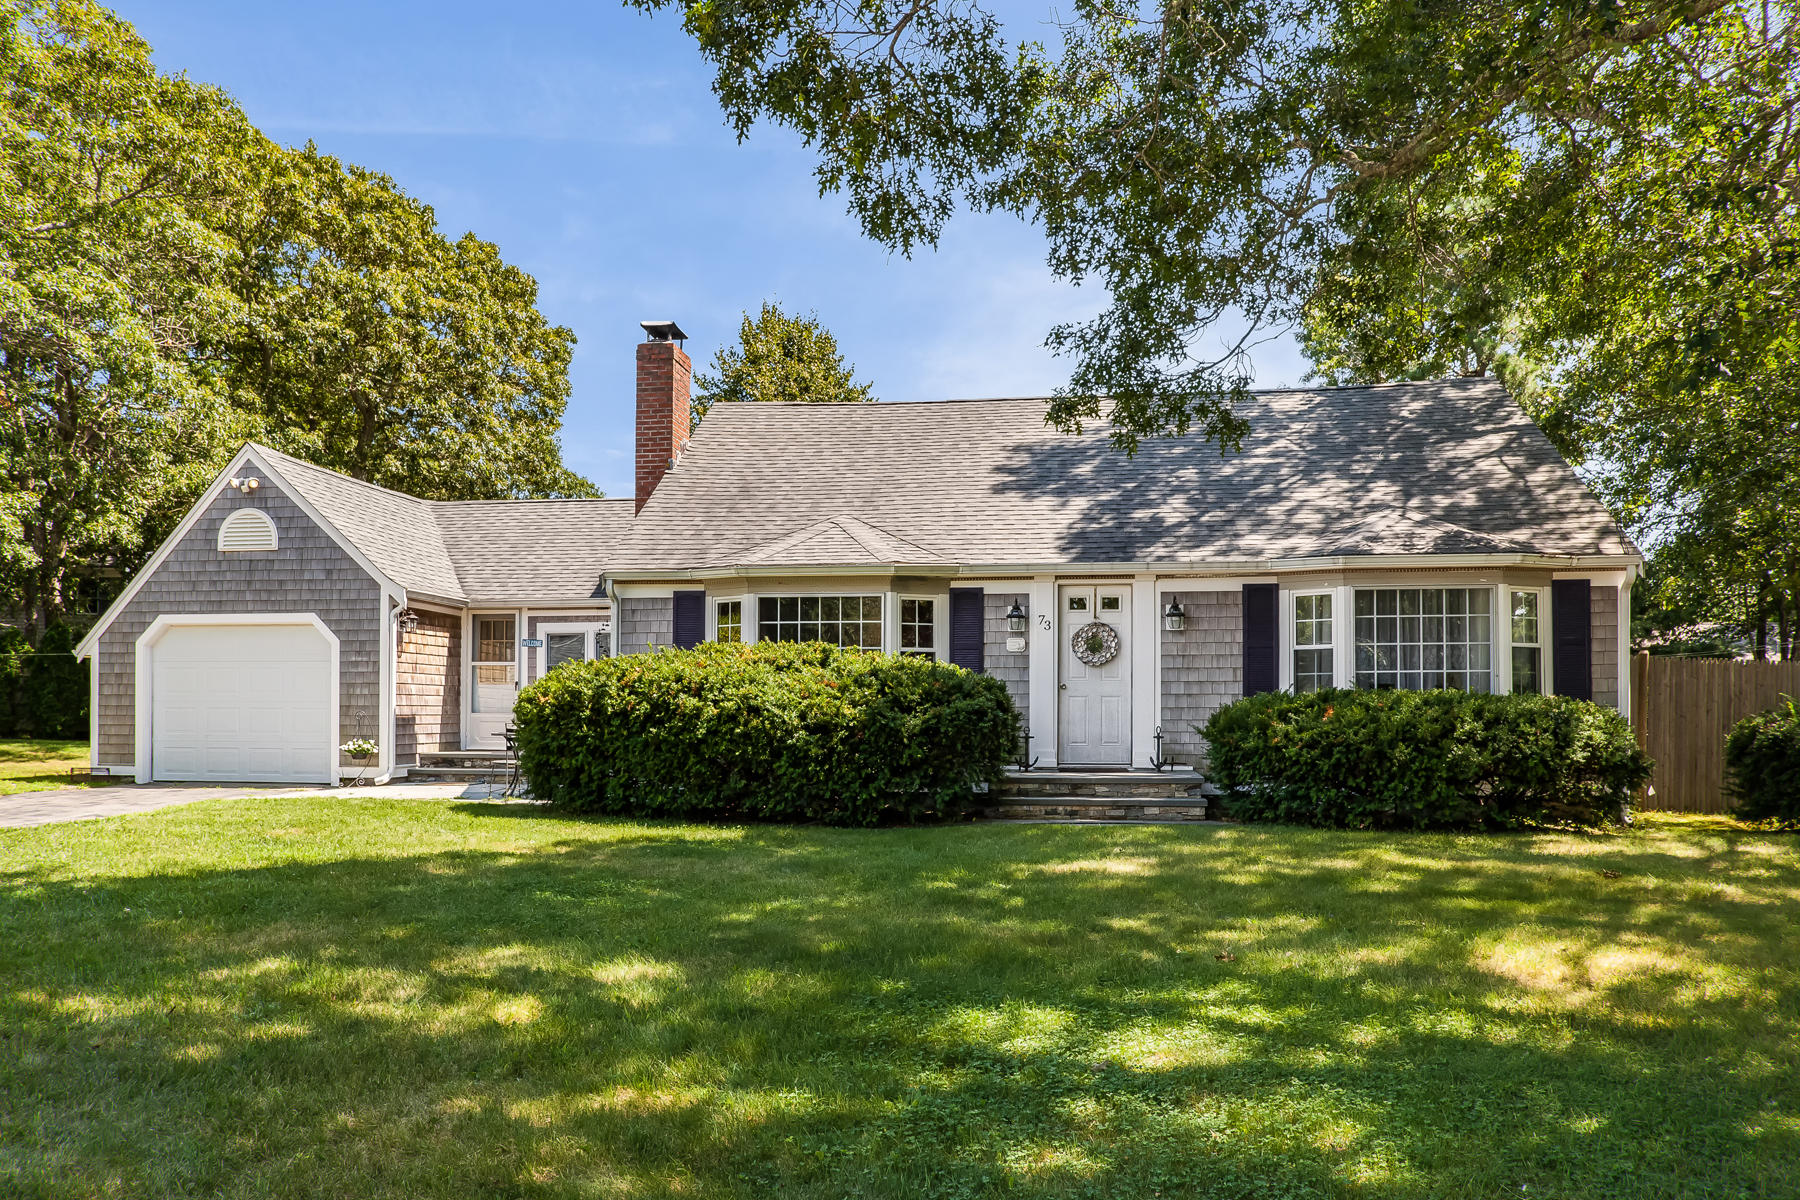 73-lillian-drive-barnstable